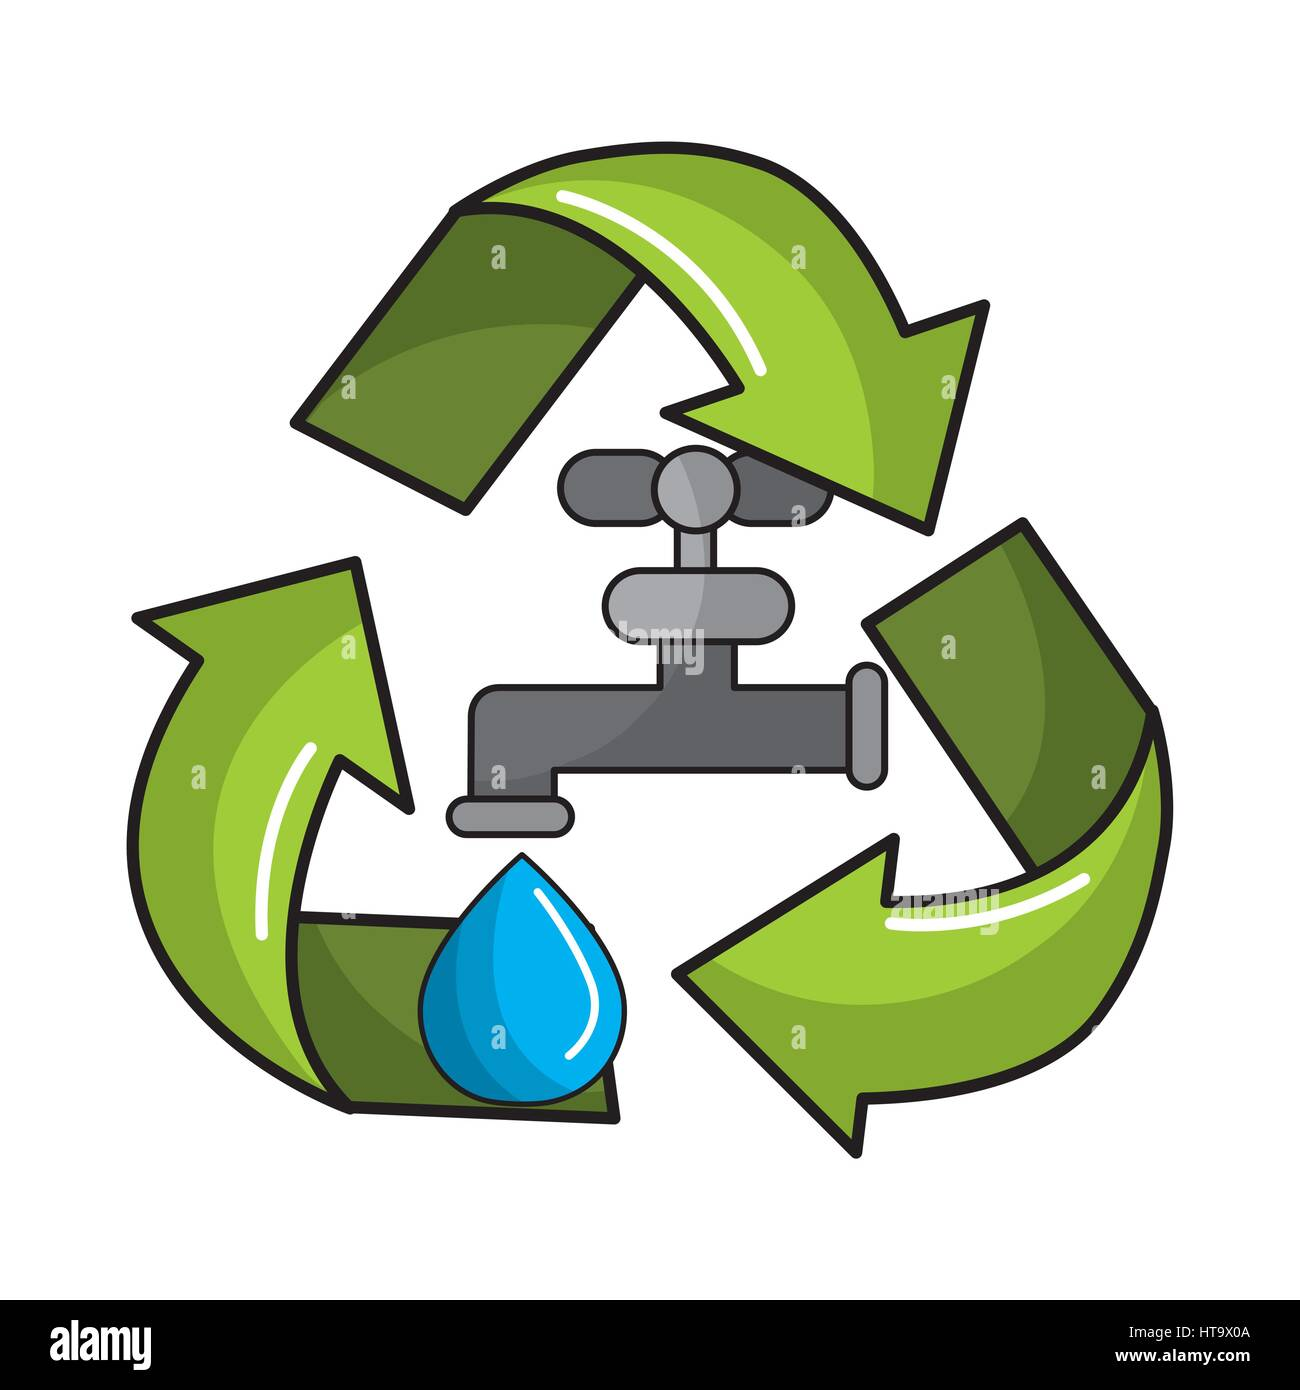 reduce and save water icon - Stock Image